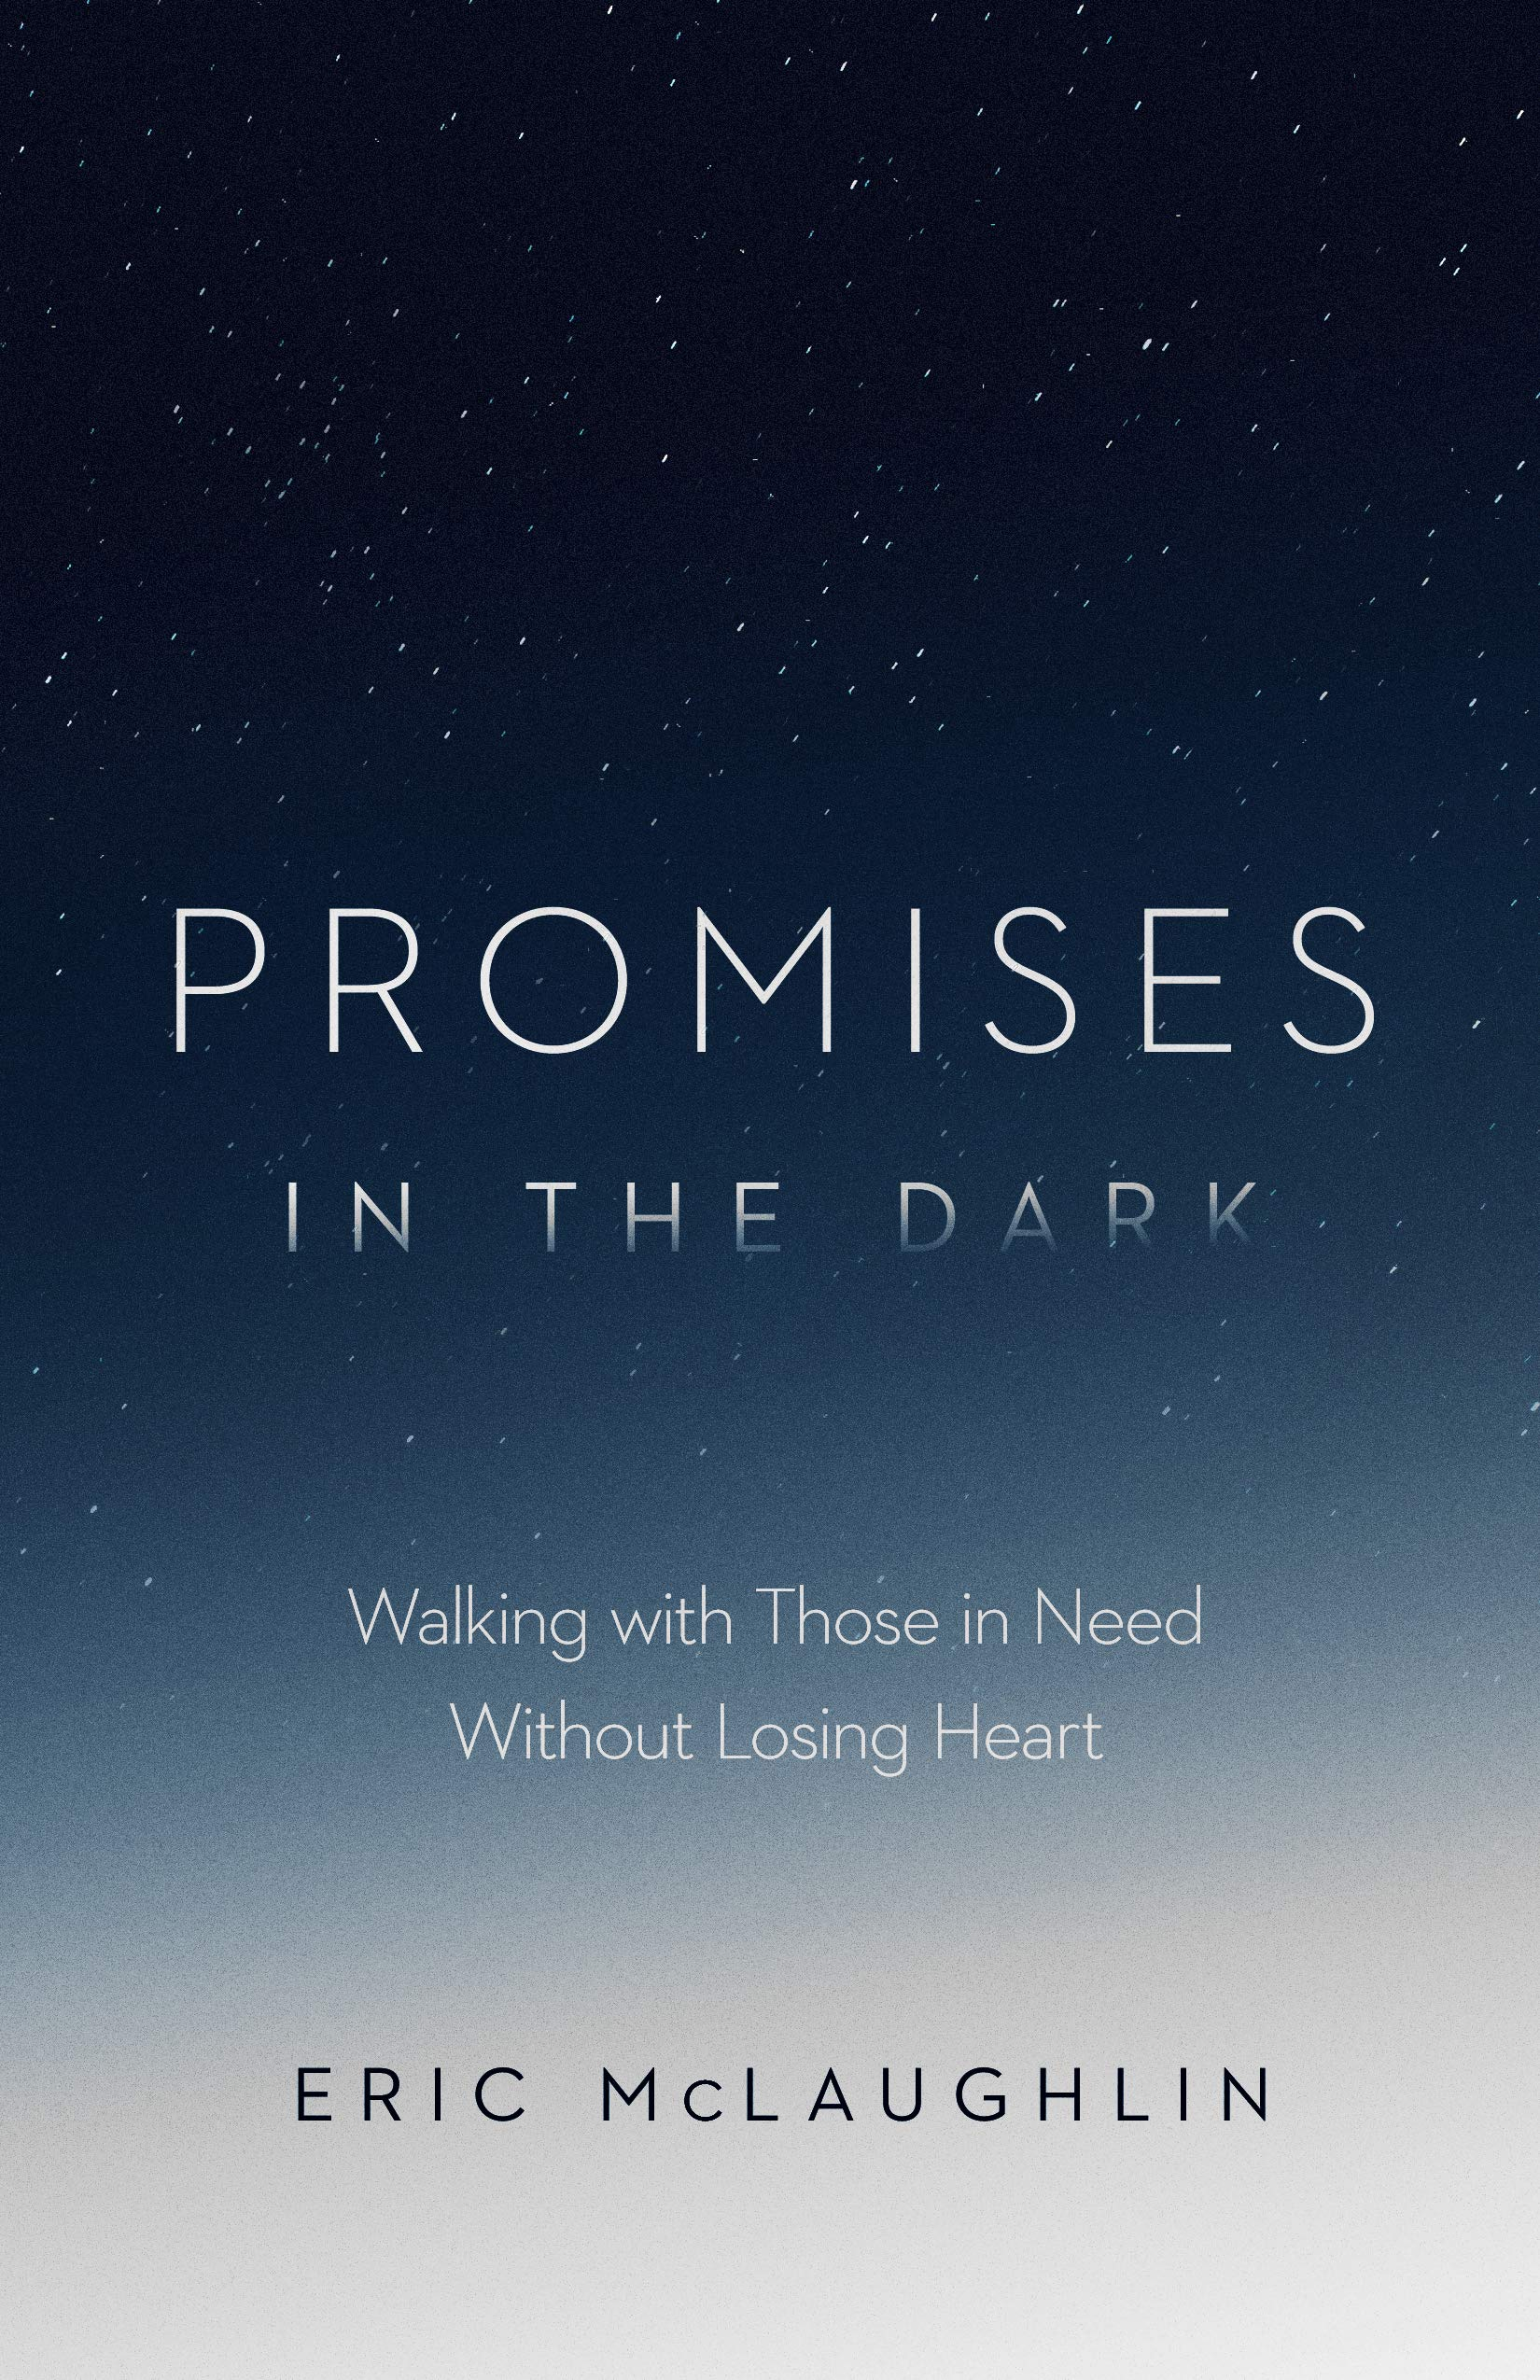 Book Review: 'Promises in the Dark: Walking with Those in Need Without Losing Heart' by Eric McLaughlin